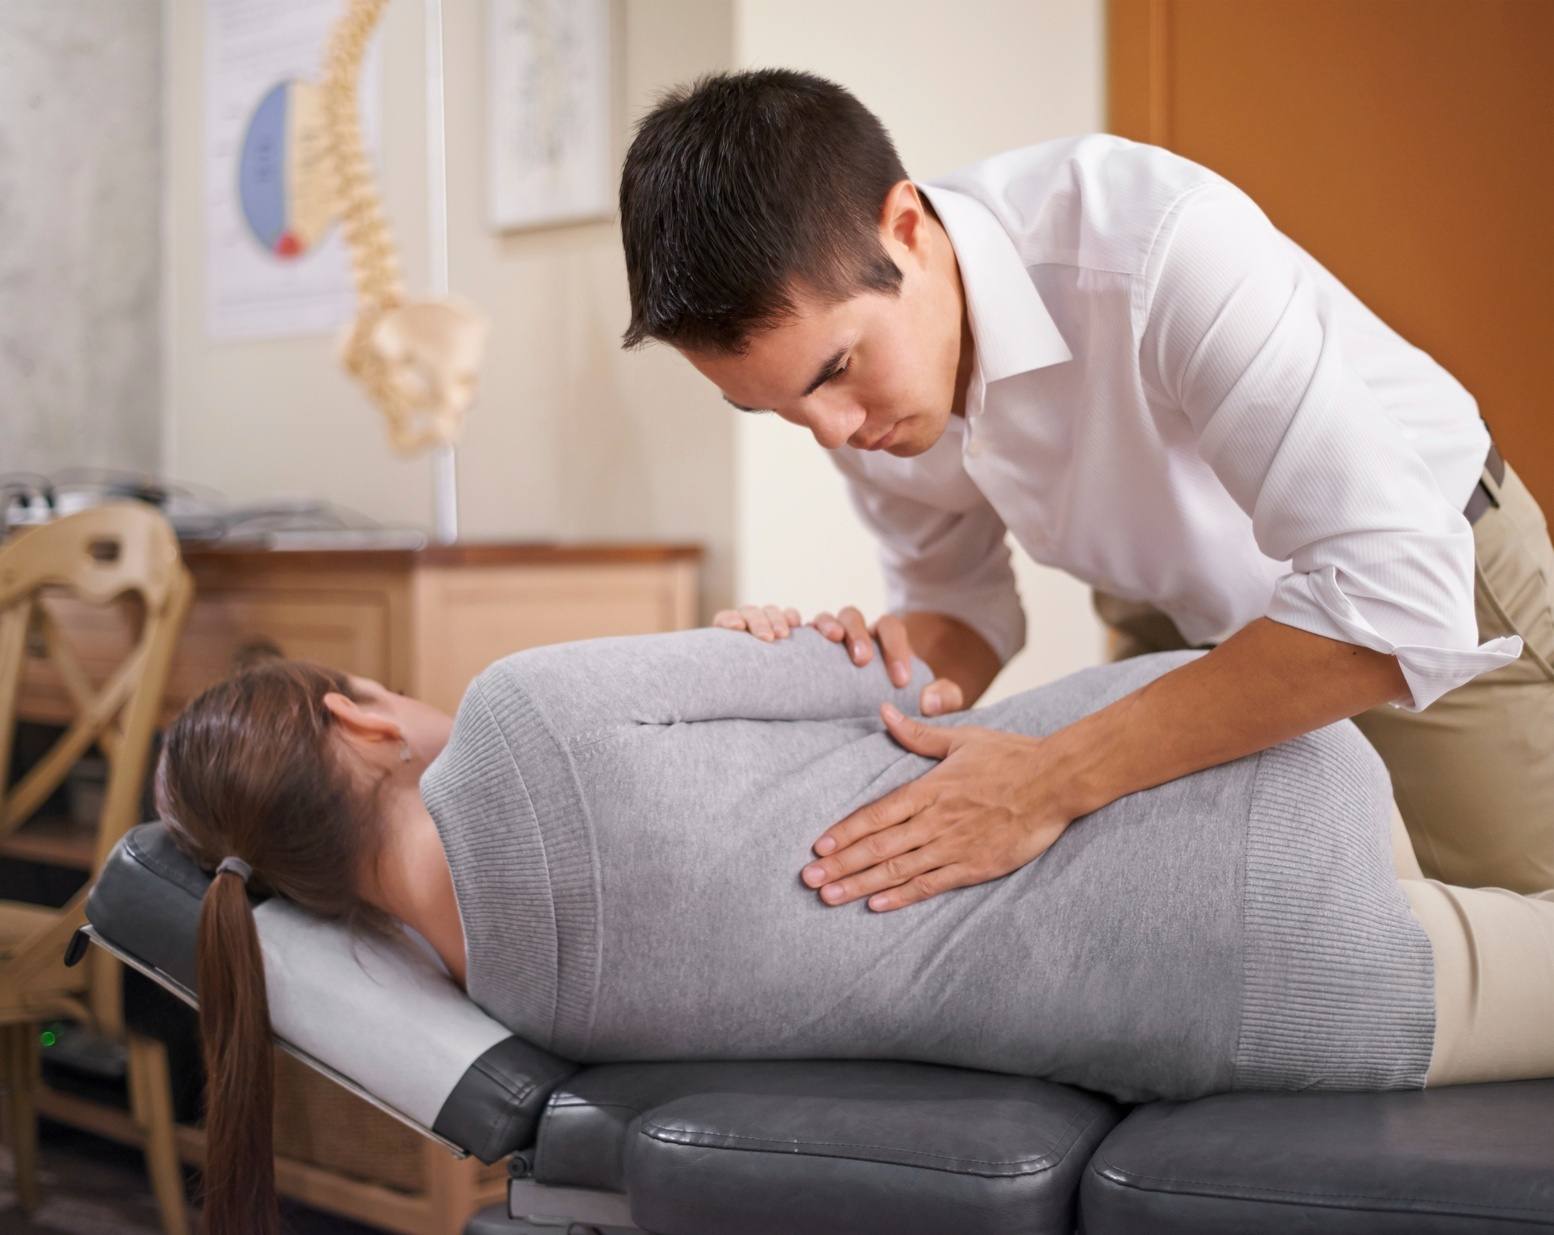 You should see your chiropractor as soon as possible following your car accident